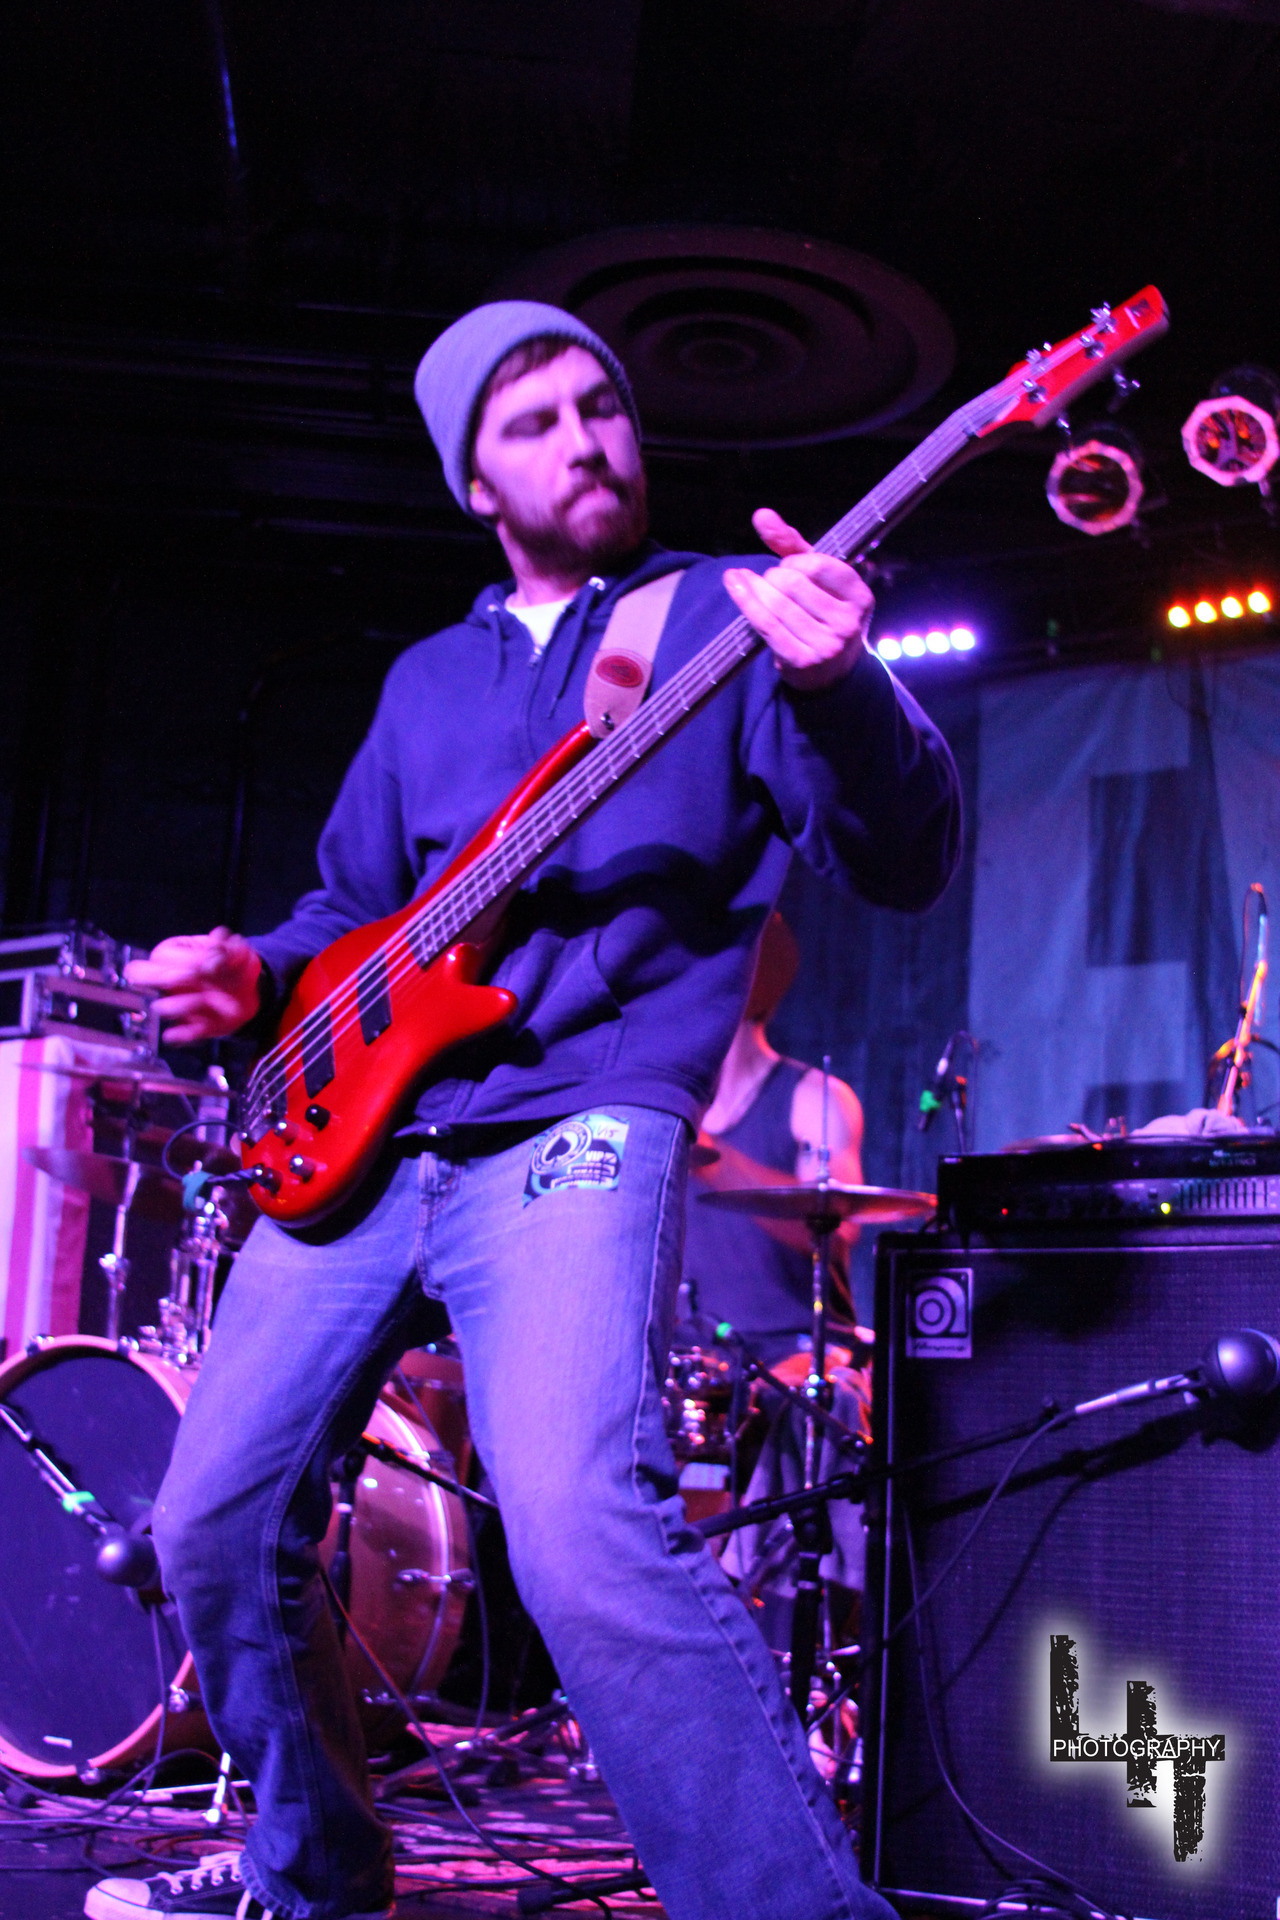 Tragic Culture live 11-15-12 @ the Ace Of Spades w/Everclear. Photos courtesy of Lost In Time Films.